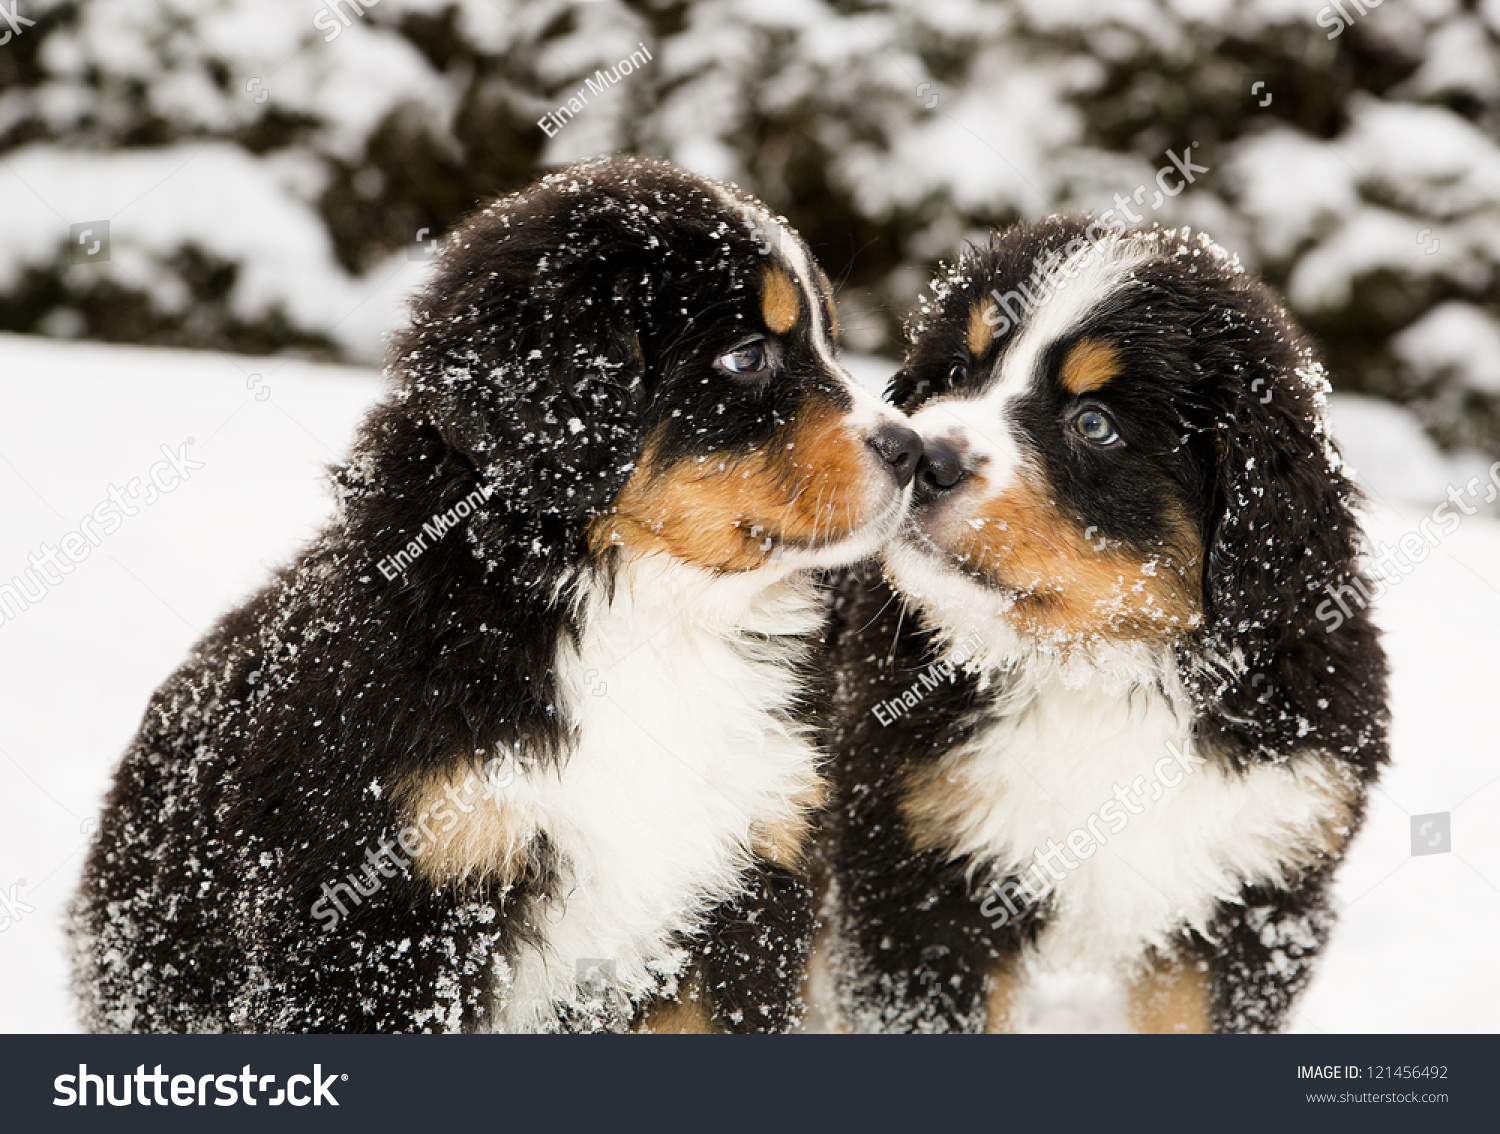 Snowy Bernese Mountain Dog Puppets Sniff Each Others Stock Photo 121456492 : Shutterstock